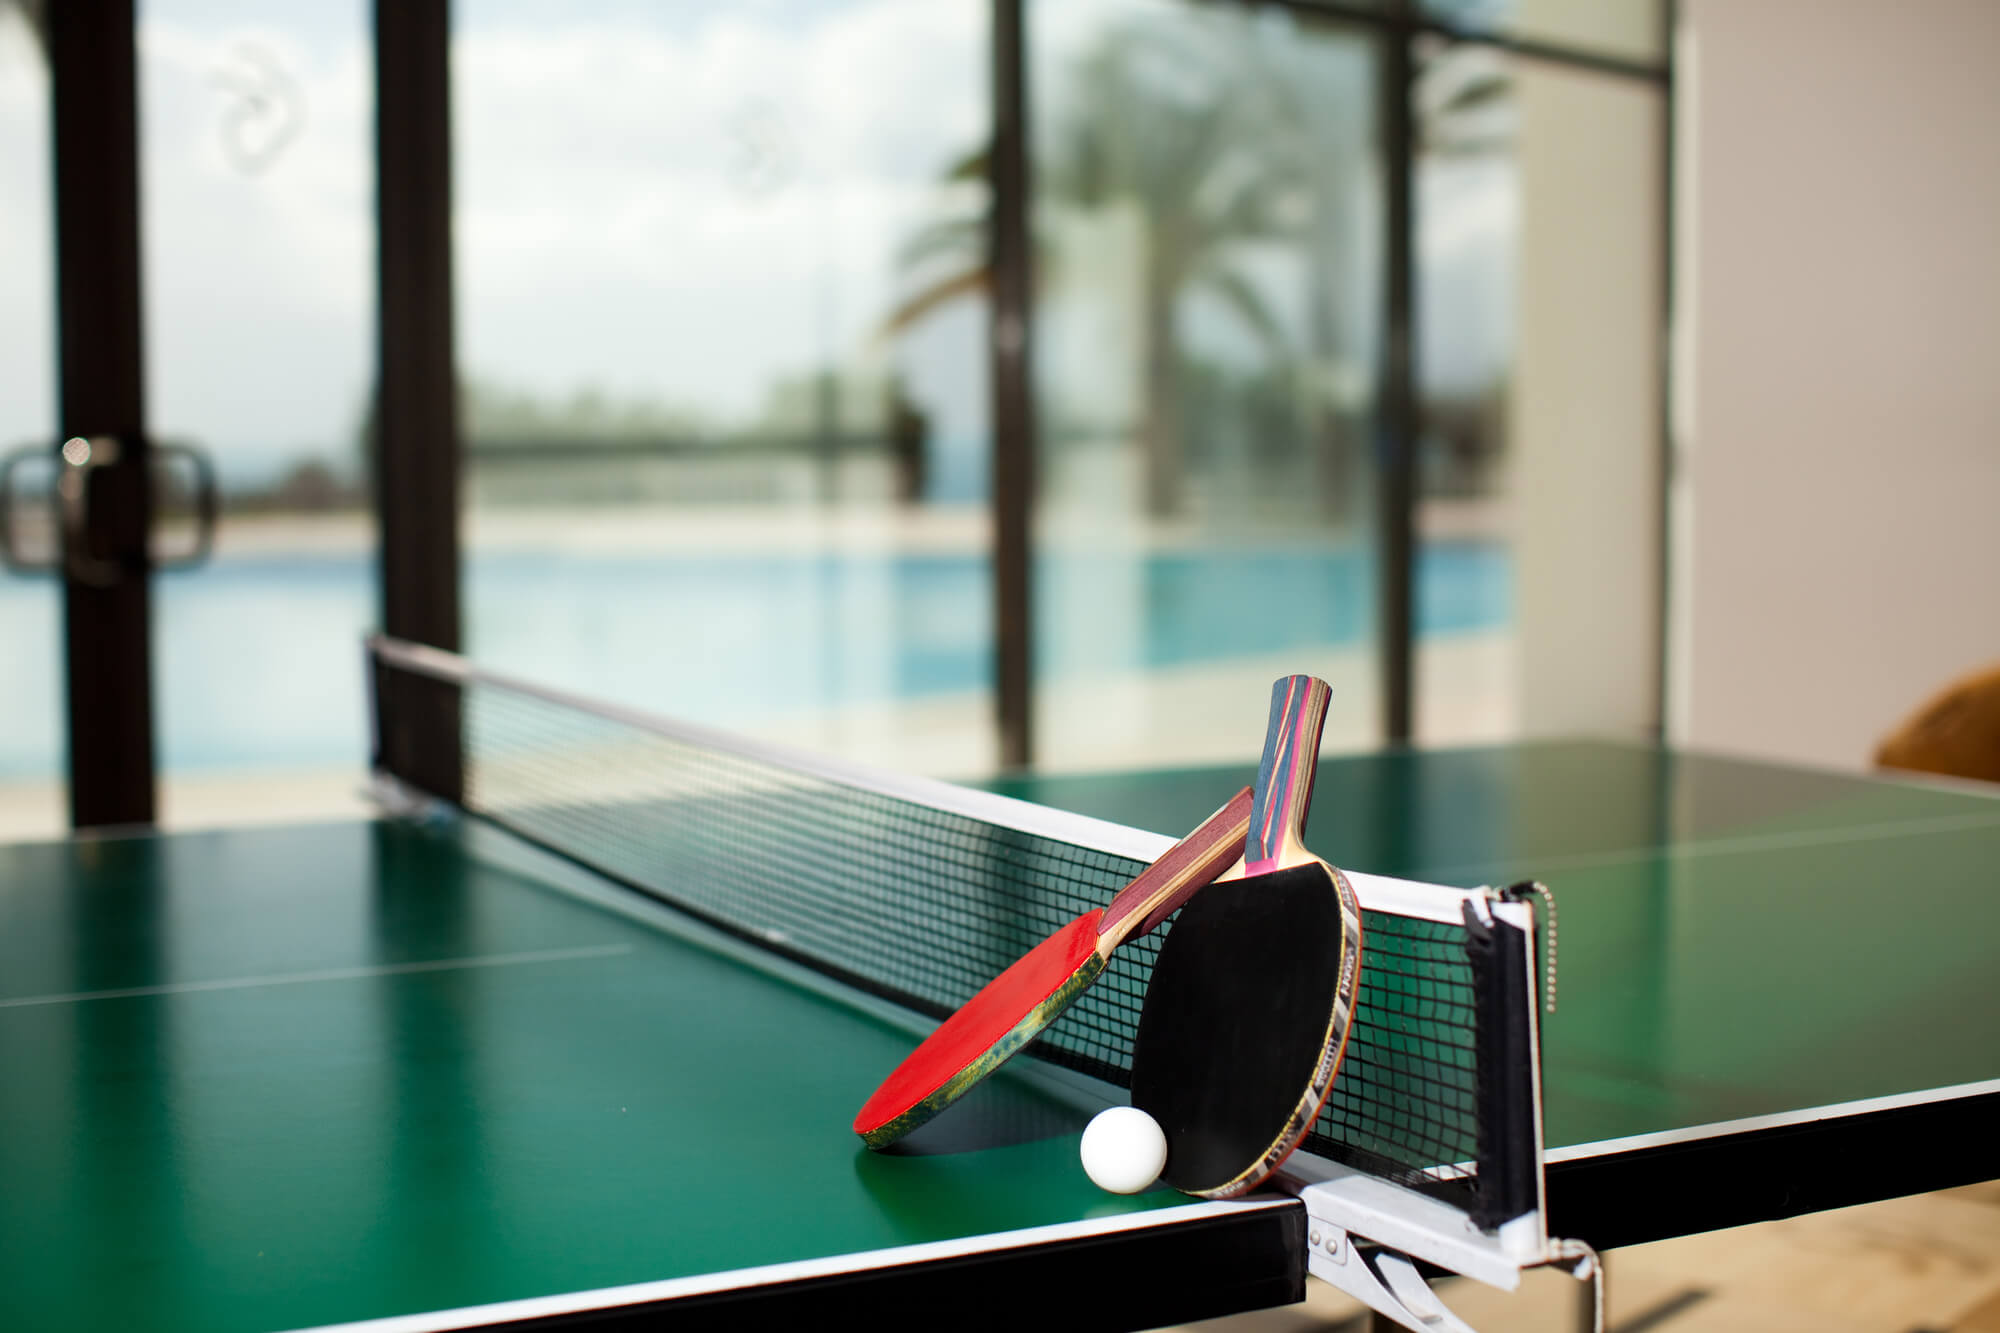 A ping pong table in a room with a swimming pool and palm trees outside